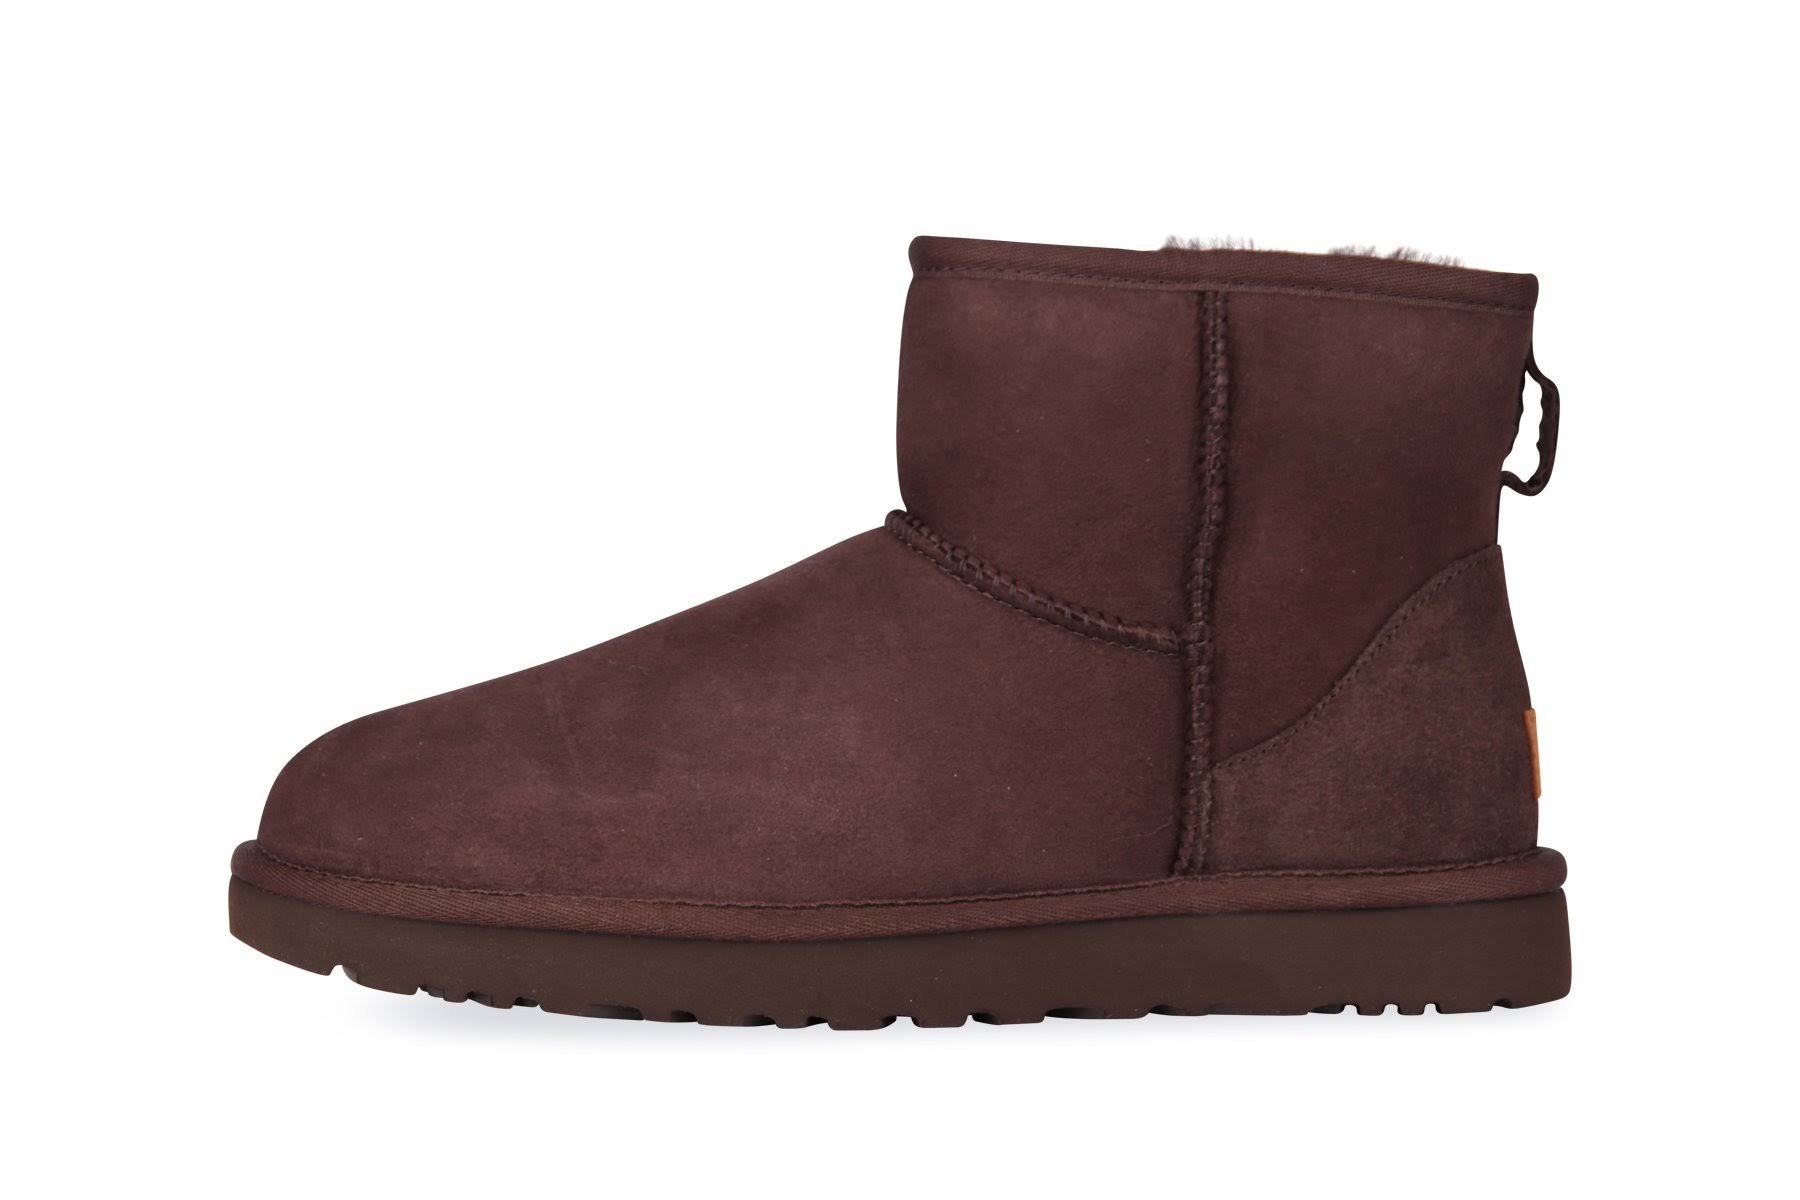 Mini Ugg 6 Chocolate Womens Uk Eu Classic Chocolate 39 5 Ii ggEaT7qcw